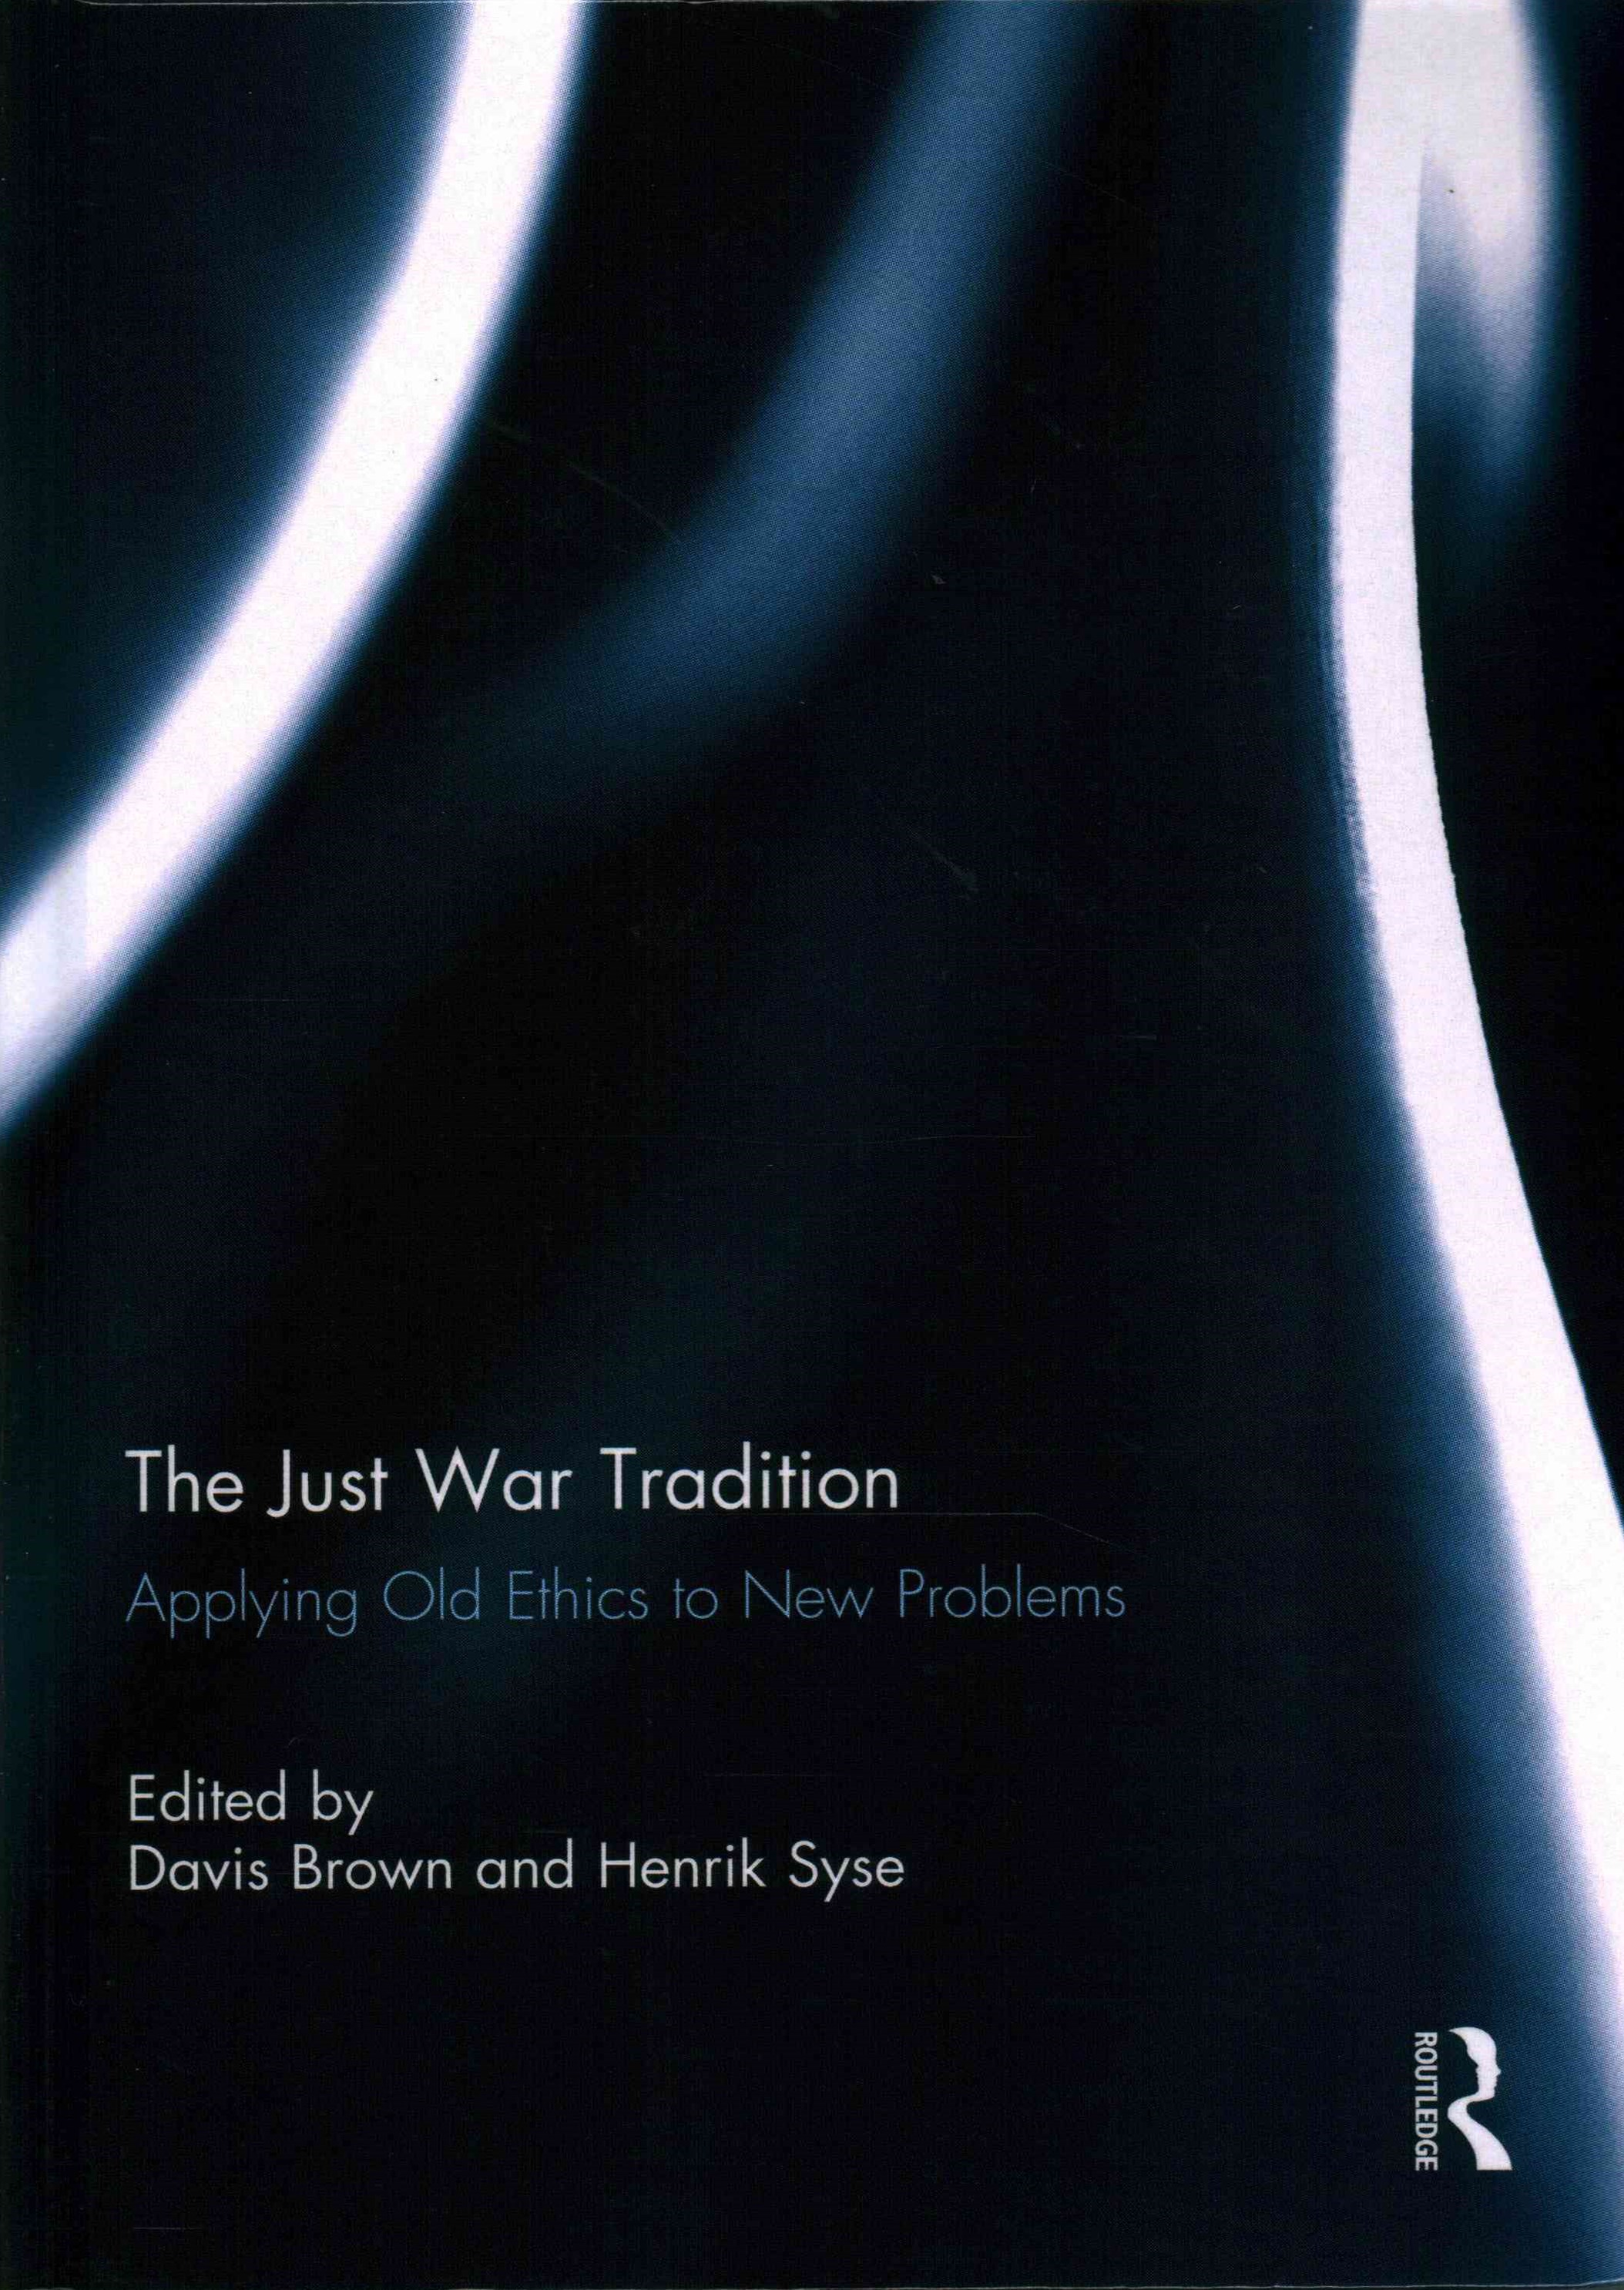 Just War Tradition: Applying Old Ethics to New Problems